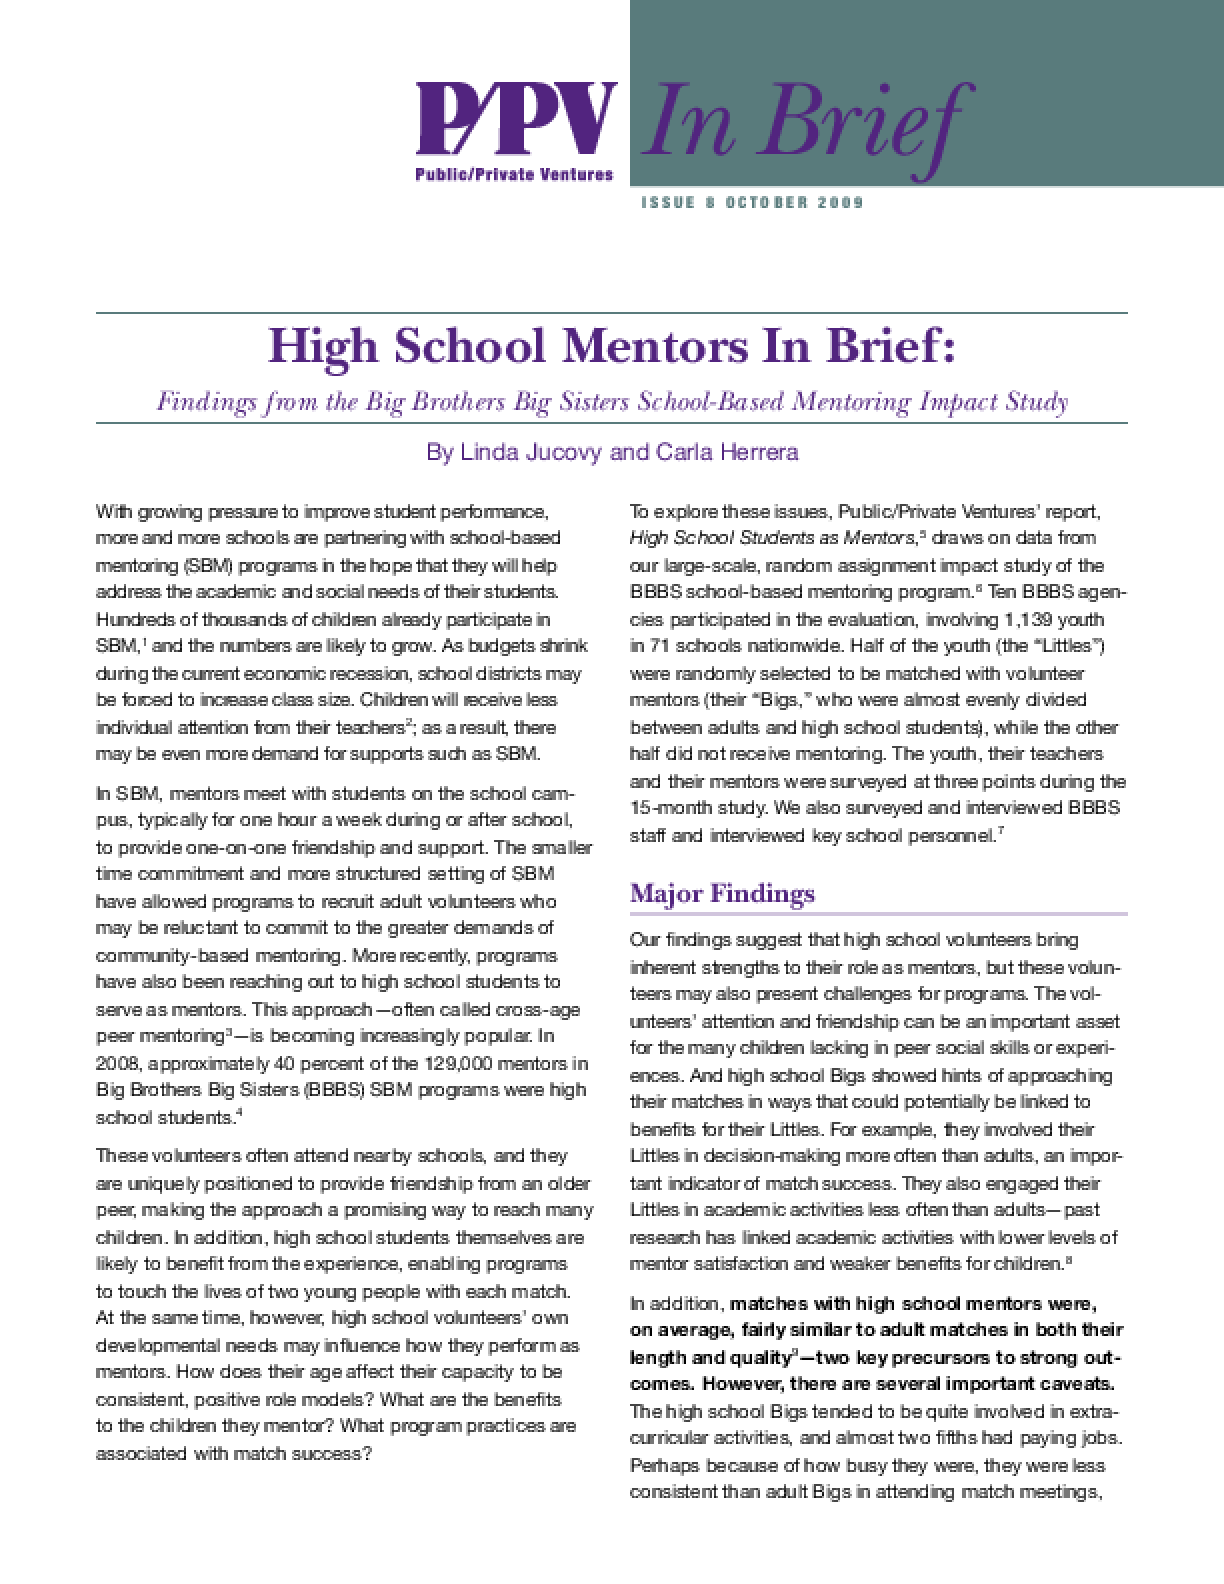 High School Mentors In Brief: Findings from the Big Brothers Big Sisters School-Based Mentoring Impact Study